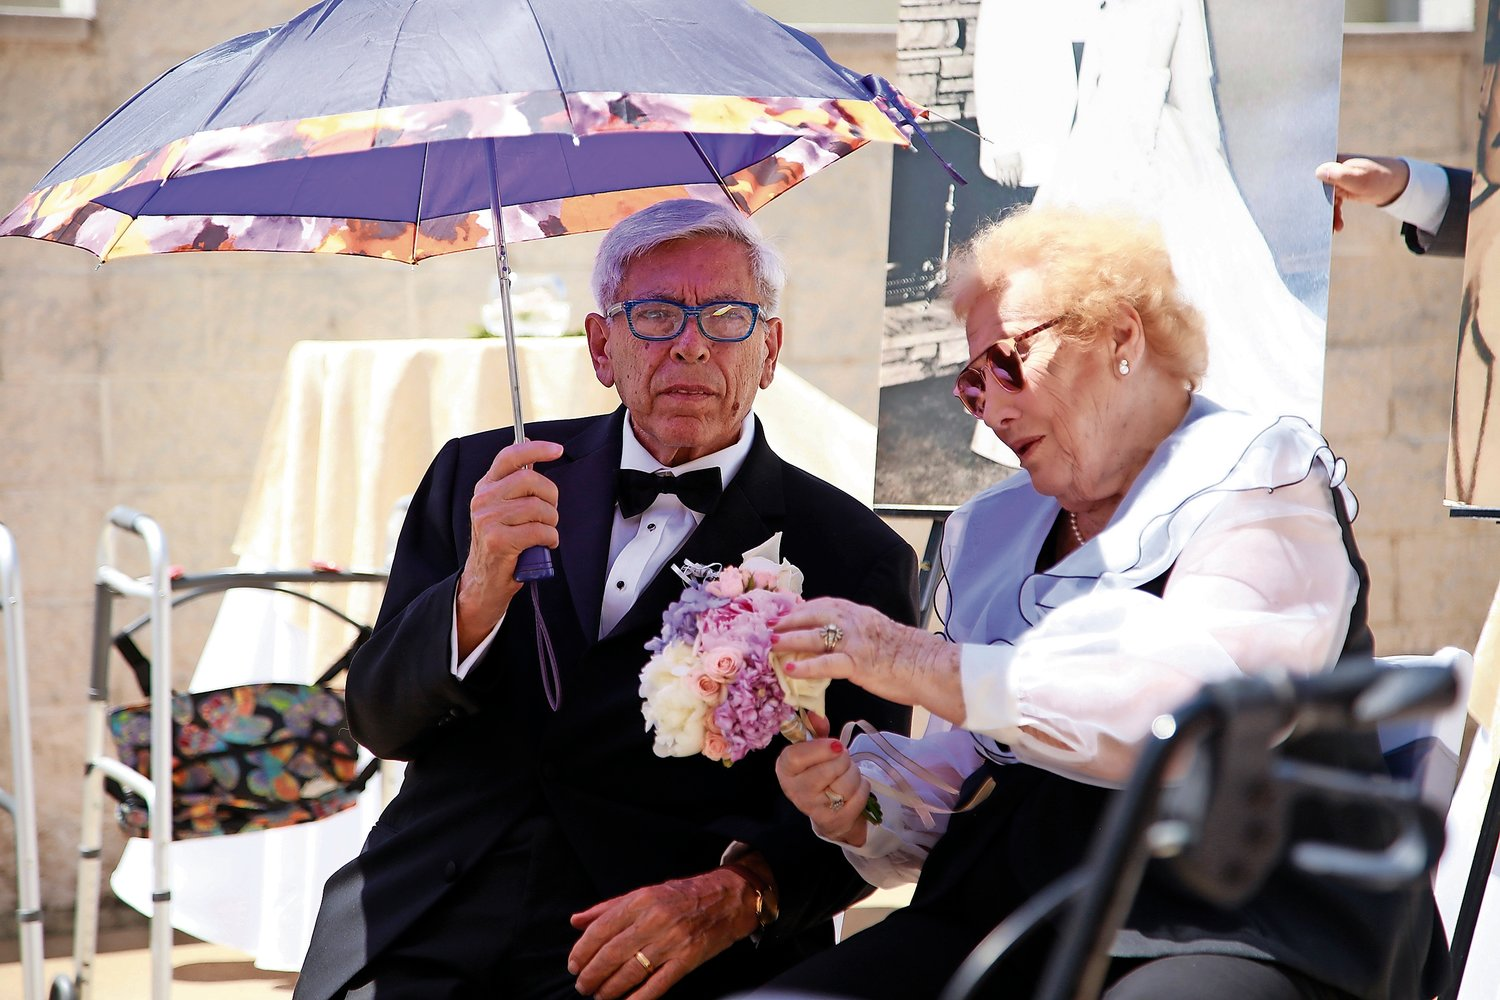 Philip and Margaret Falzone celebrated 63 years of wedded bliss during a vow renewal ceremony at the Bristal Assisted Living facility on June 26.